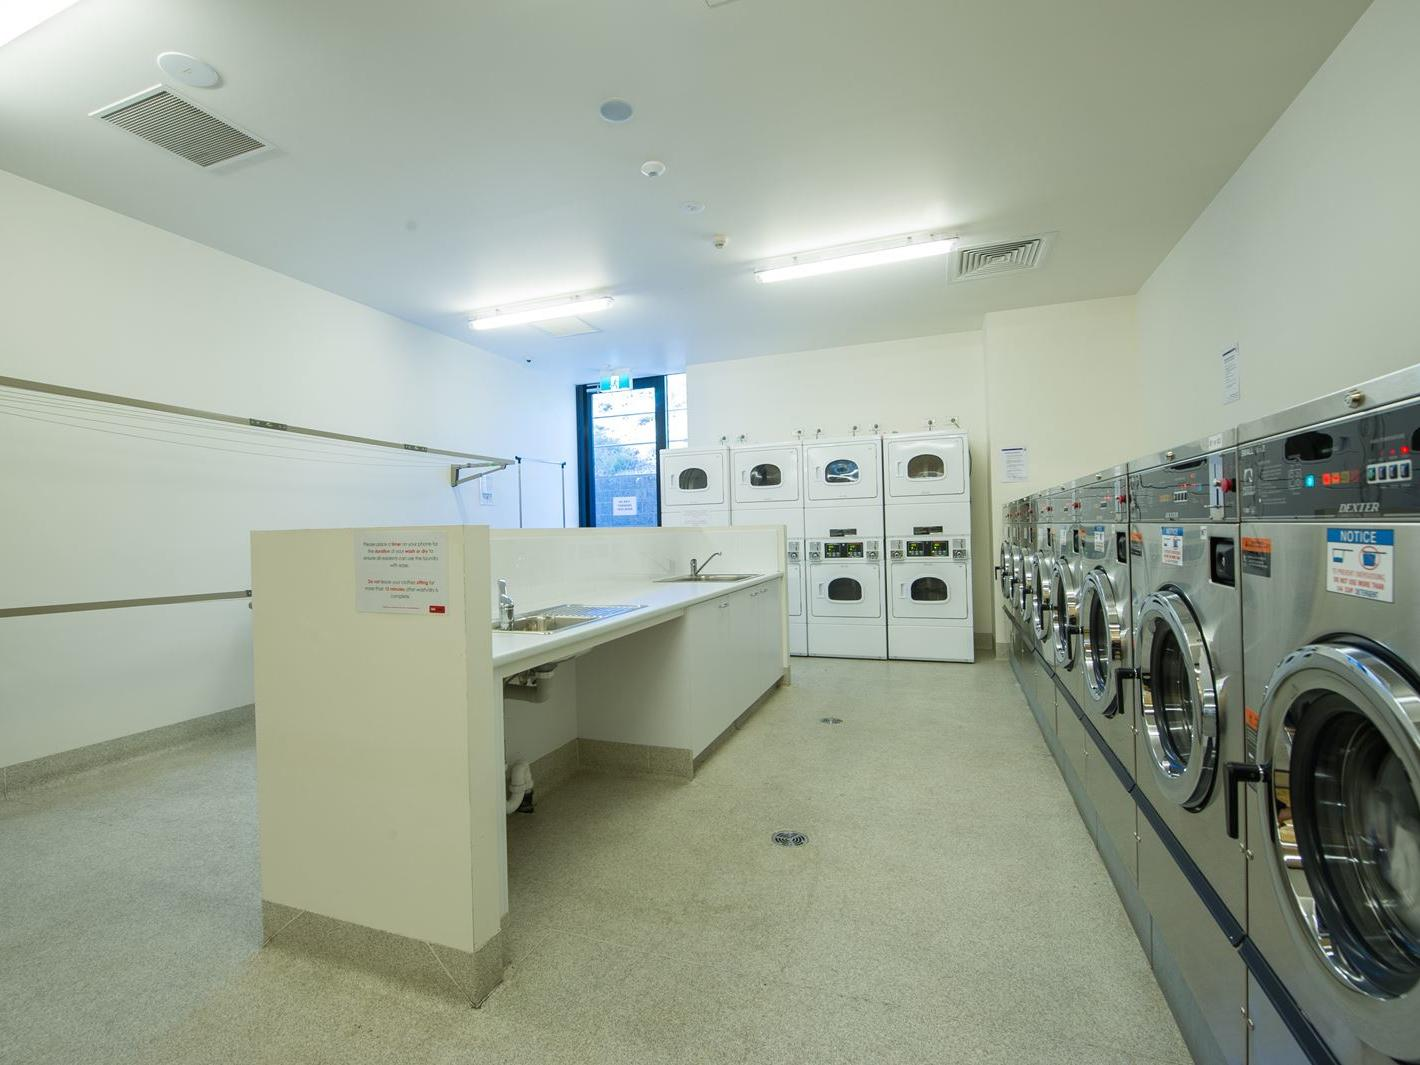 The Laundry is equipped with washing machines, dryers, ironing board, sink & clothes lines